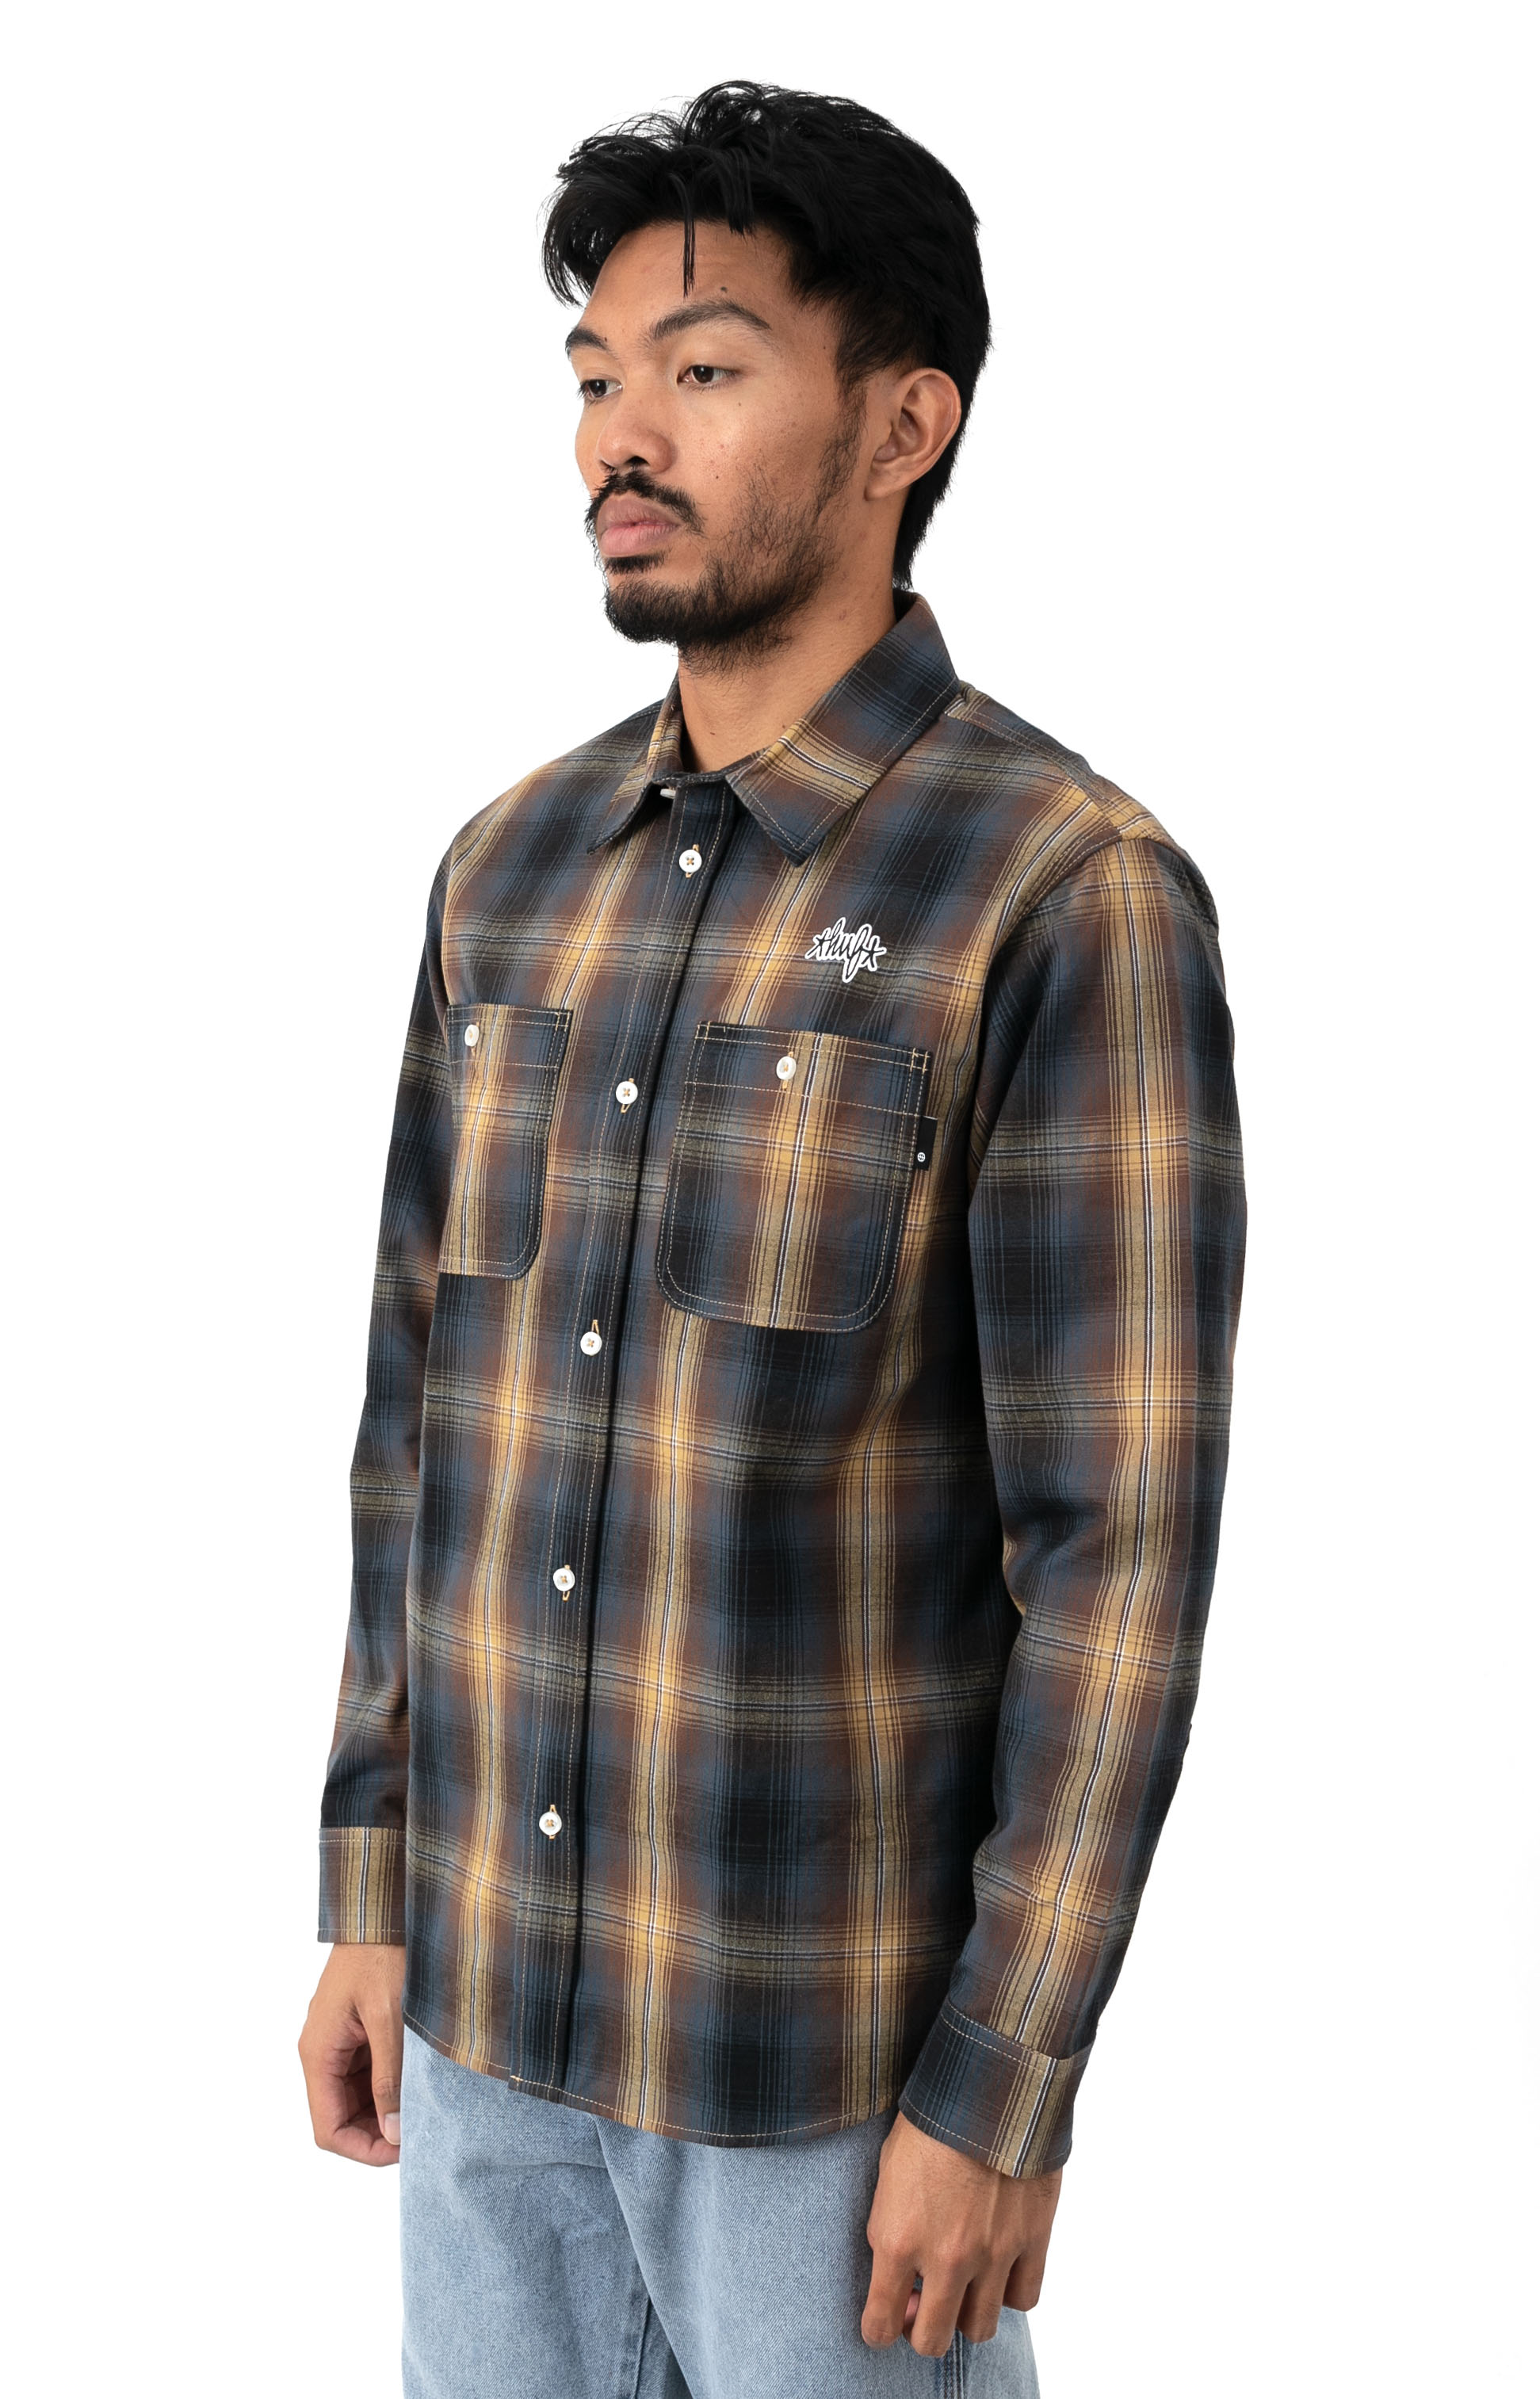 Sanford Button-Up Shirt - Rich Brown  2